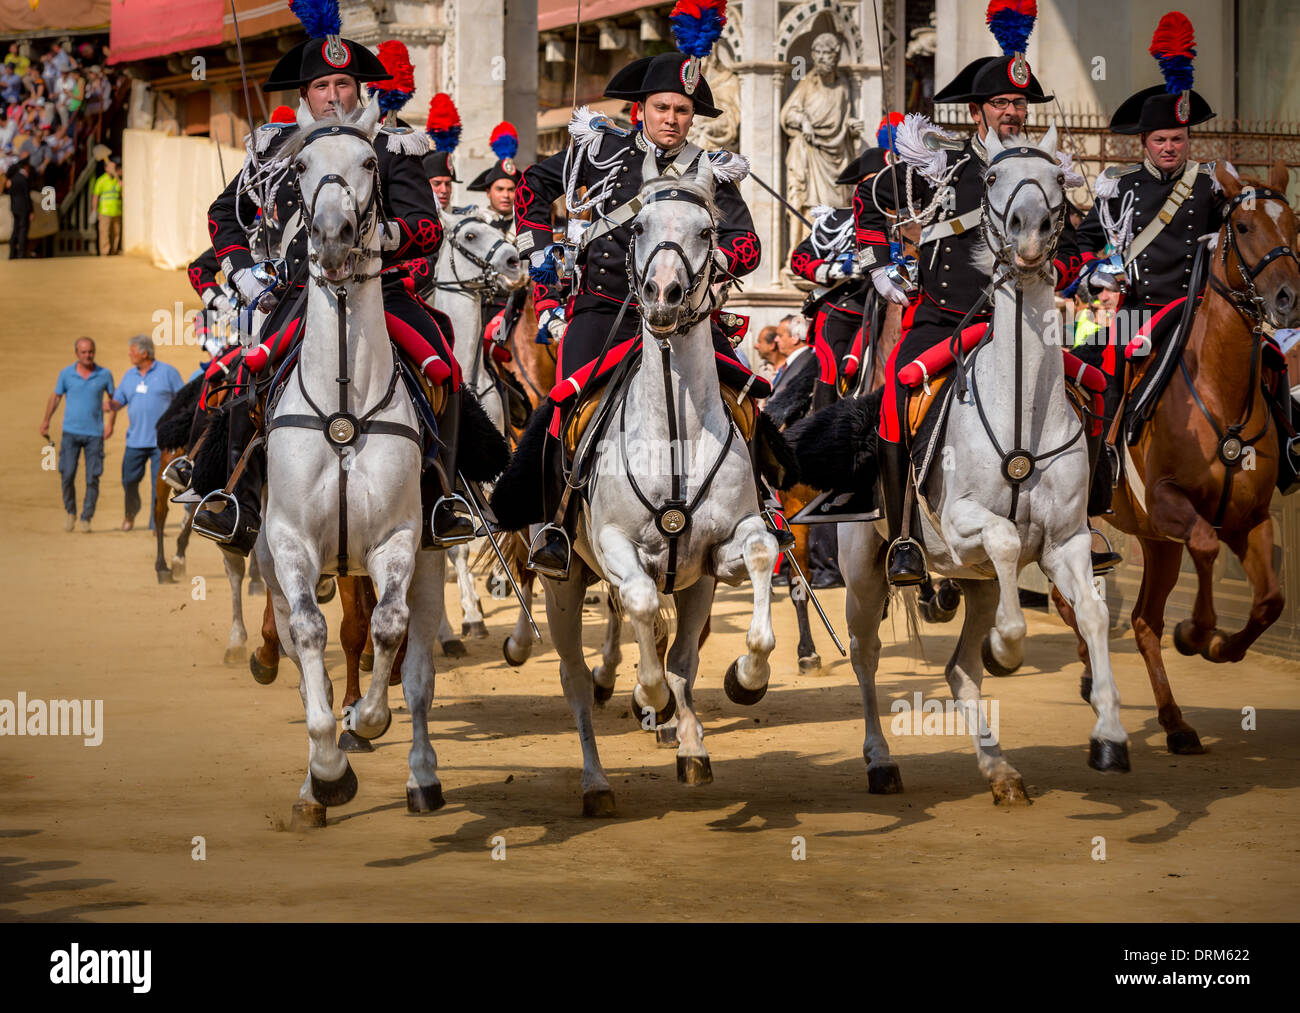 Carabineers,The Palio, Piazza del Campo, Siena, Italy - Stock Image